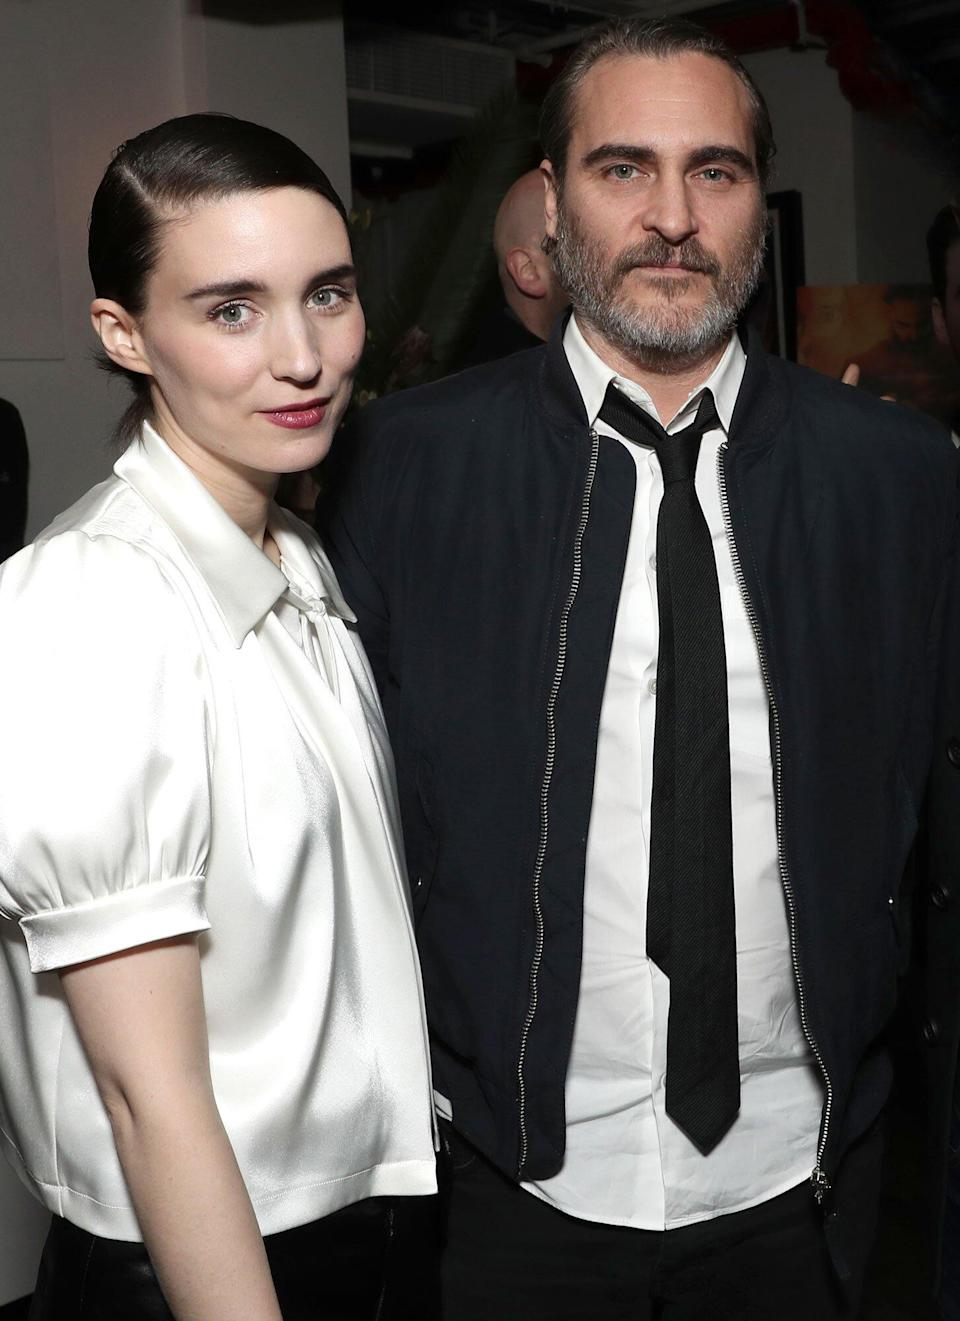 Rooney Mara and Joaquin Phoenix Talk Son for First Time as They Address Migrant Children Crisis